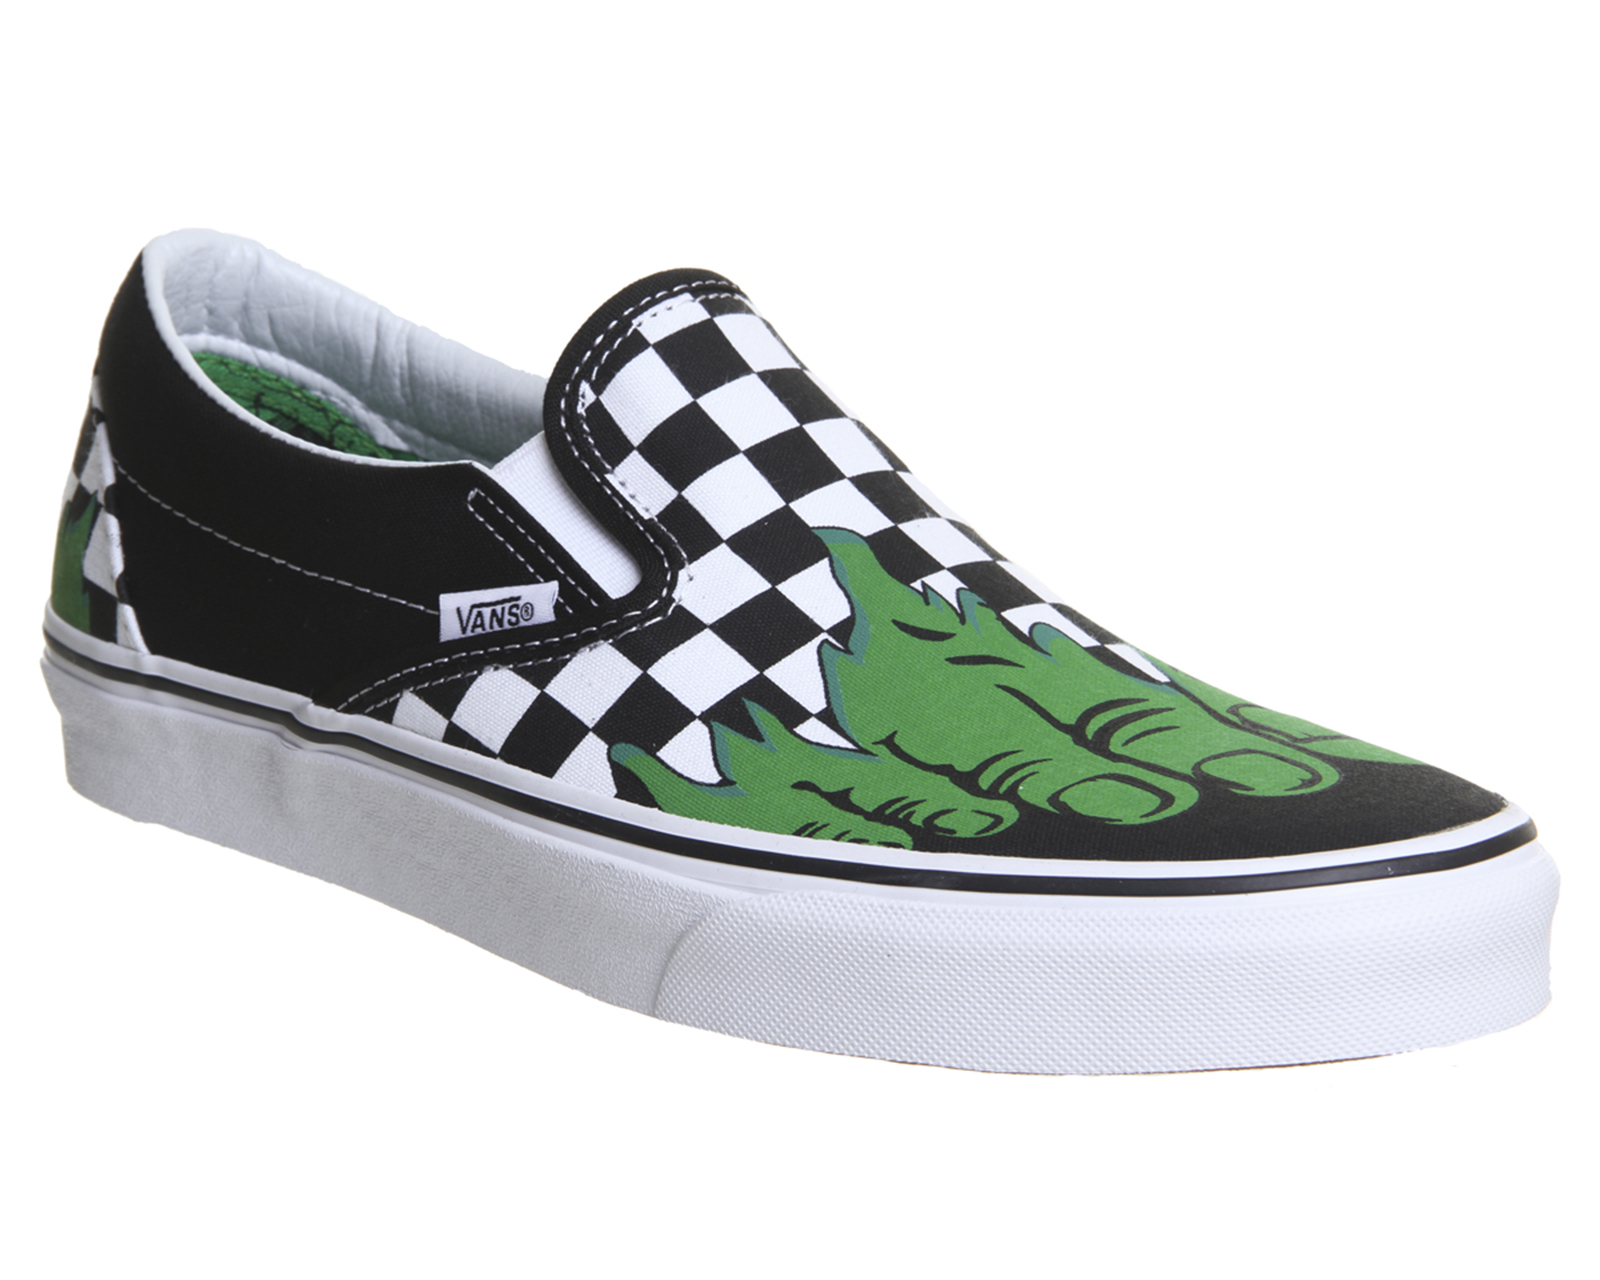 5e0ec3531c283d Sentinel Mens Vans Vans Classic Slip On Trainers Hulk Checkerboard Marvel  Trainers Shoes